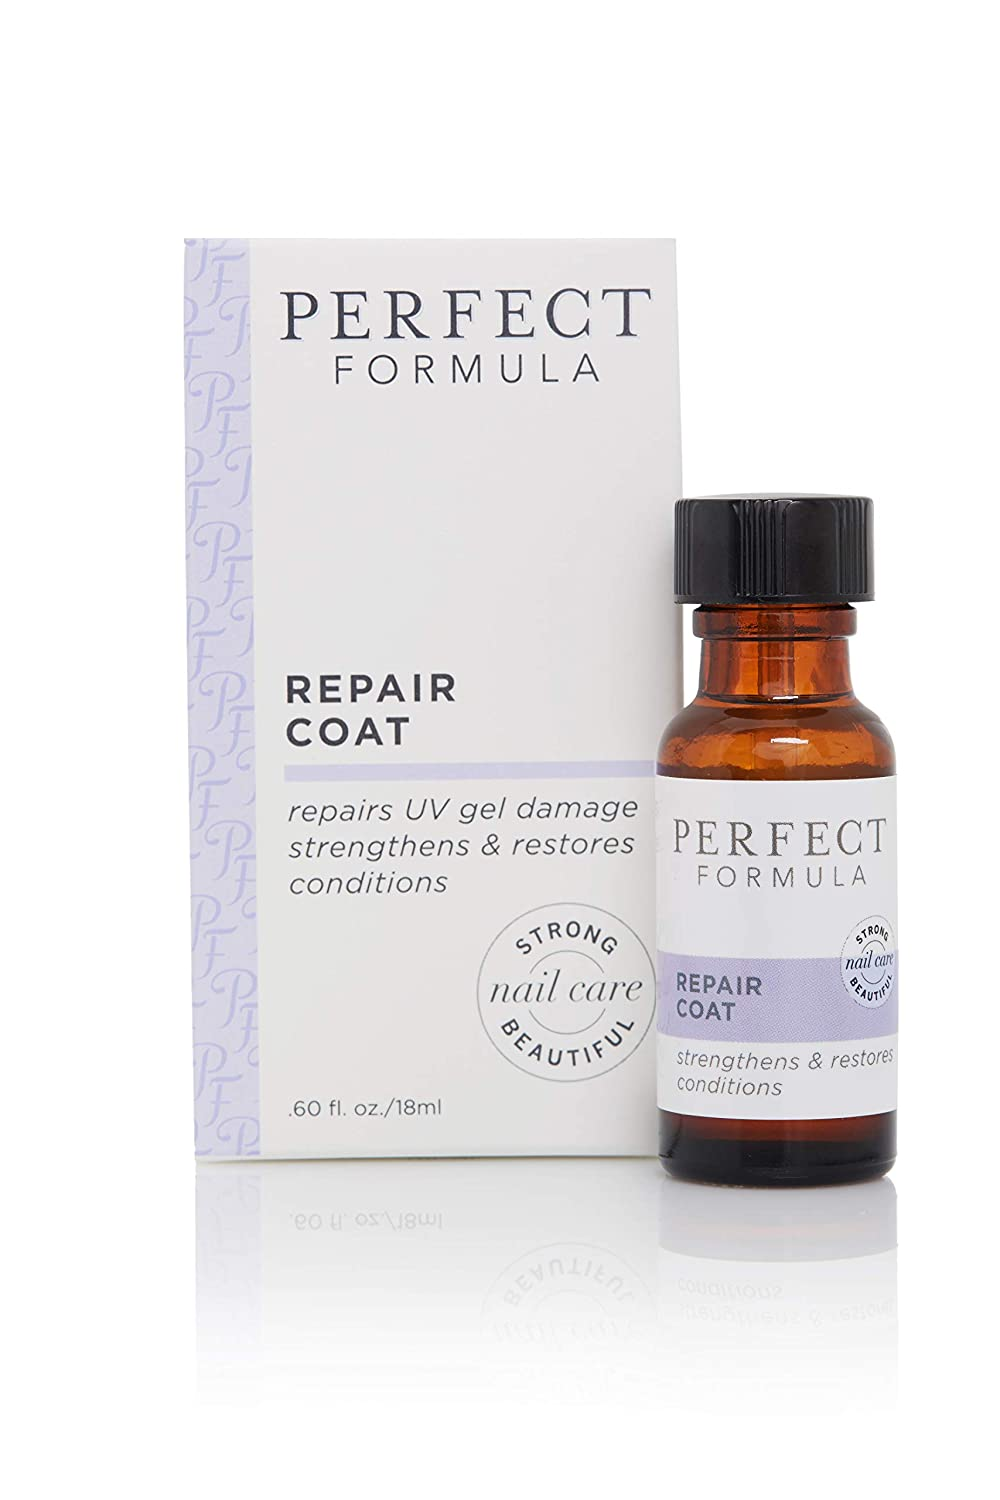 Perfect Formula Repair Coat, 0.6 Fl Oz: Premium Beauty